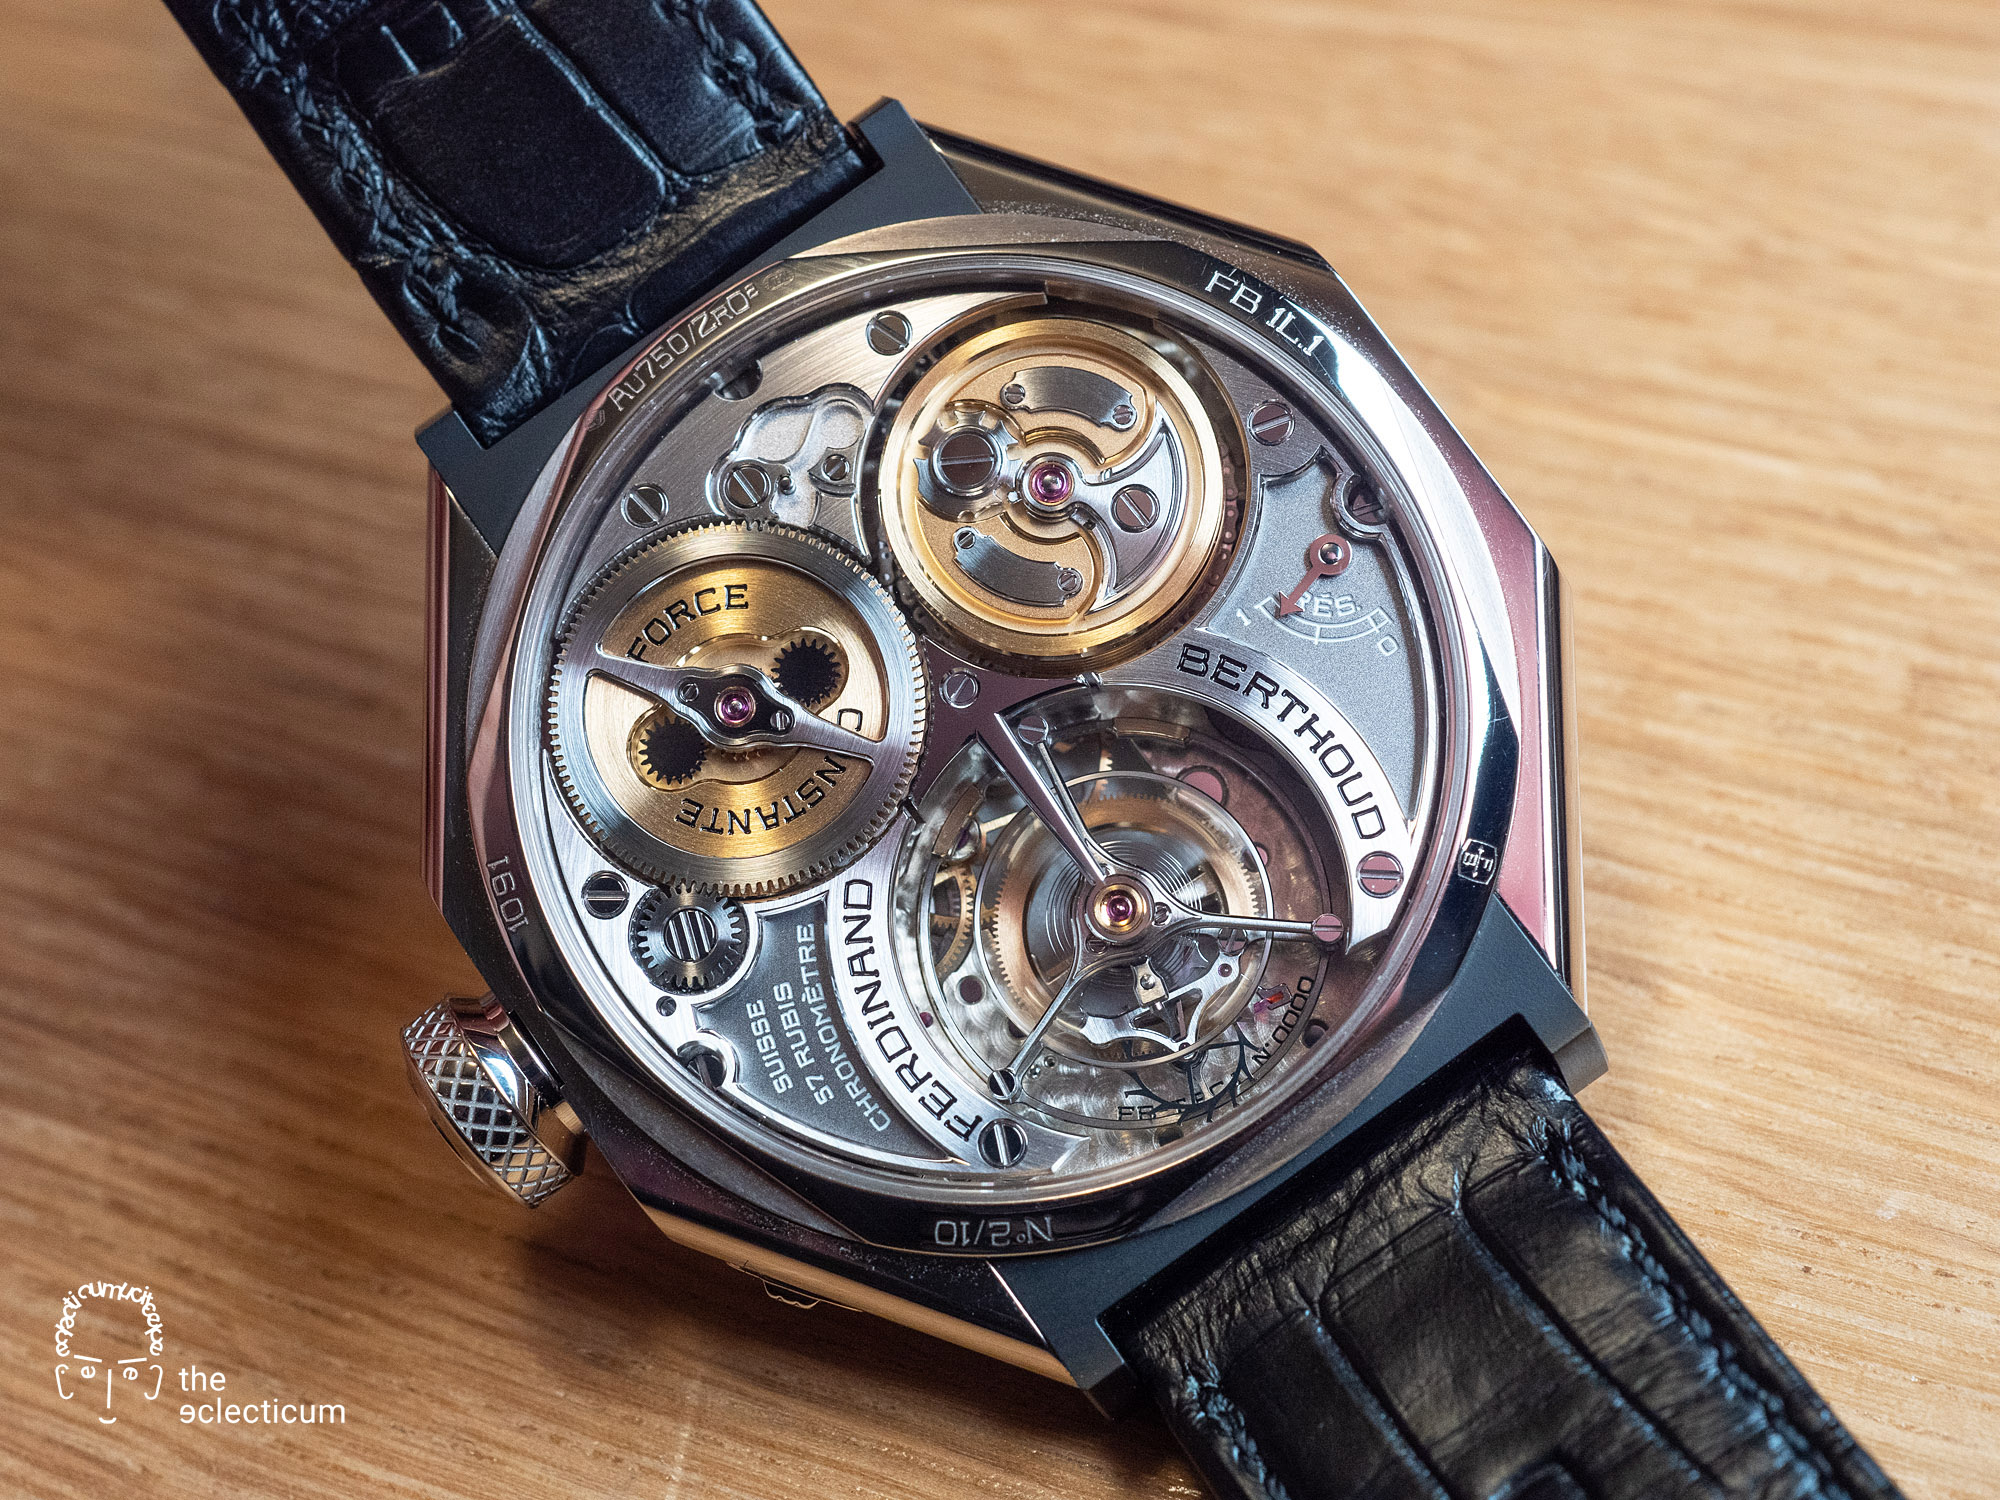 Ferdinand Berthoud Chronometry FB 1L chronometer tourbillon movement